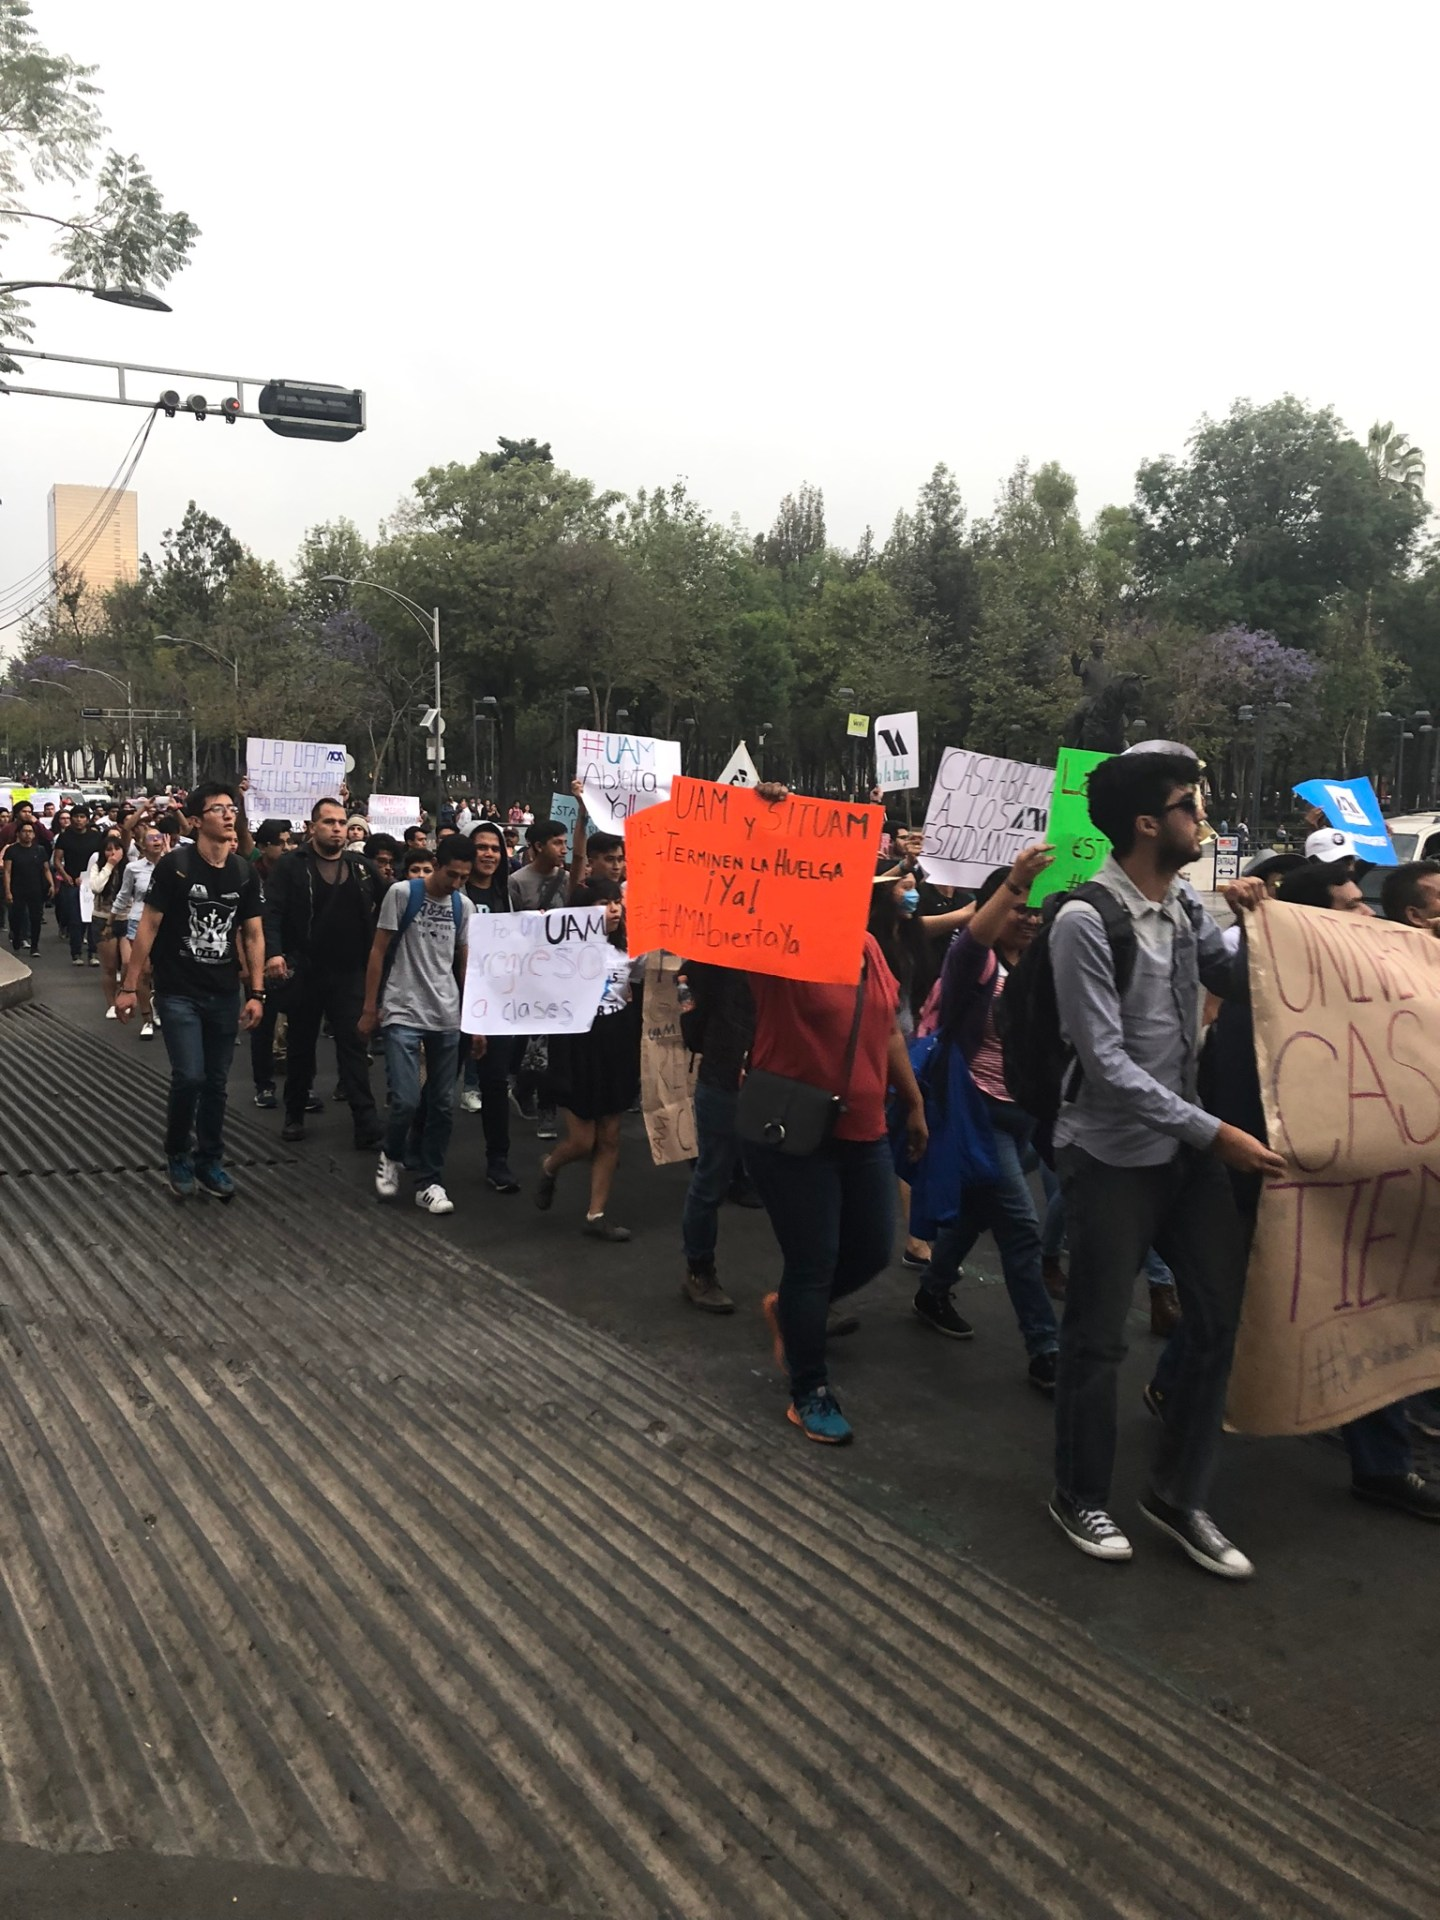 Protest on Reforma, Mexico City